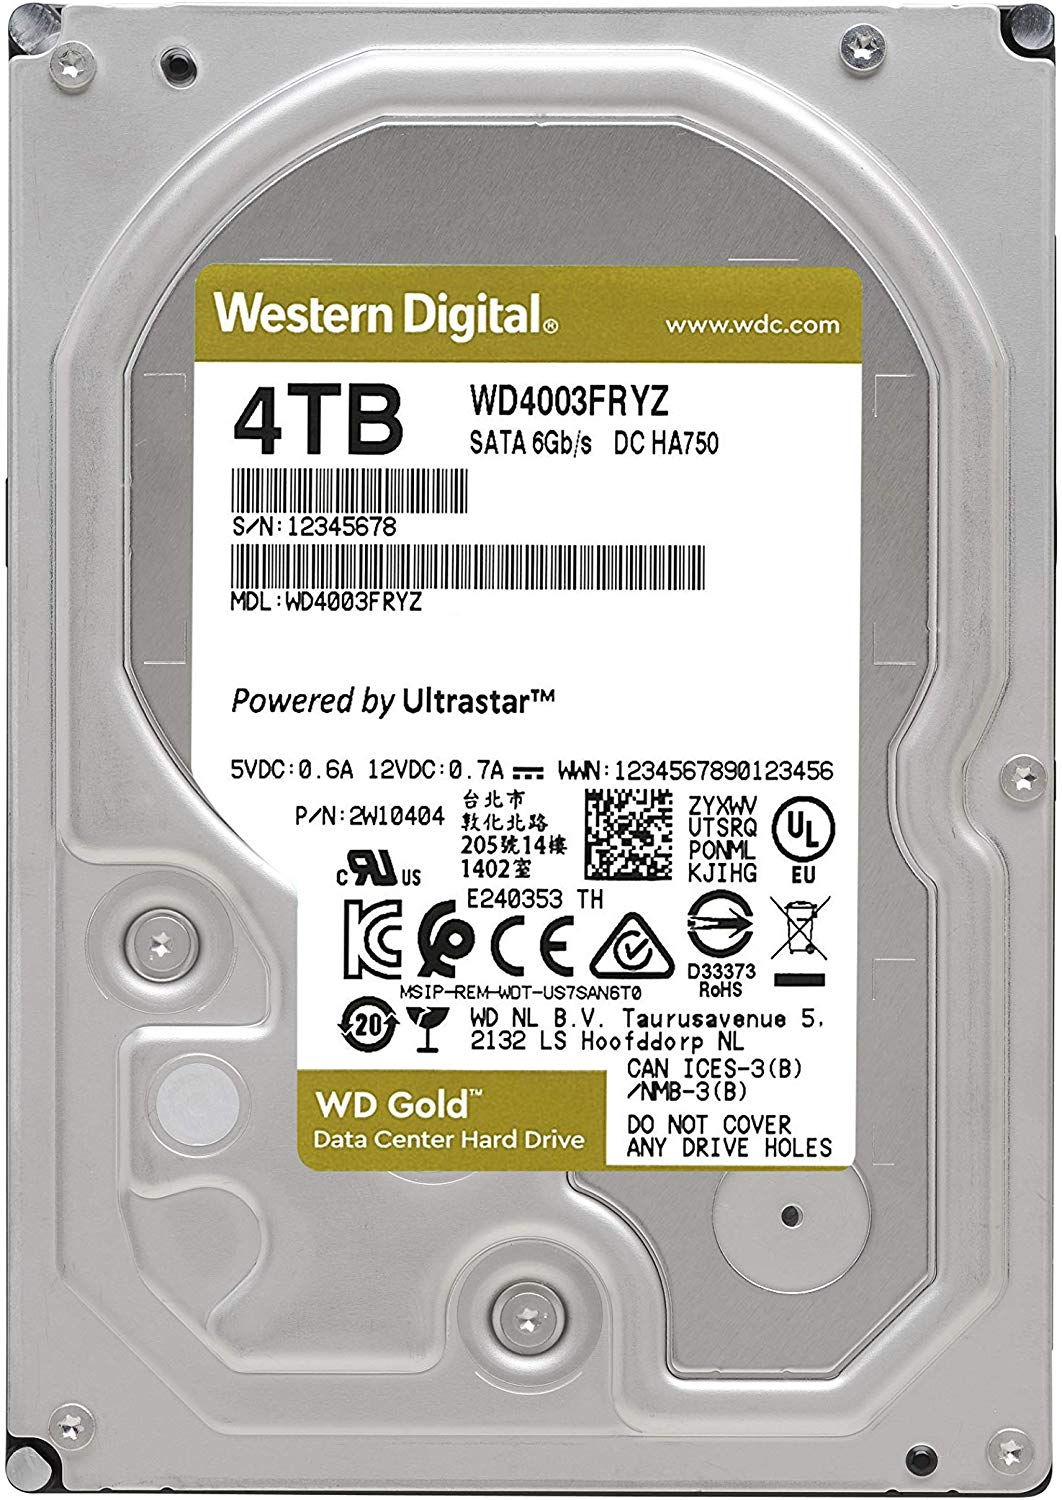 Ổ Cứng HDD Western WD Gold 4TB Enterprise Class Internal Hard Drive - 7200 RPM Class, SATA 6 Gb/s, 256 MB Cache, 3.5inch